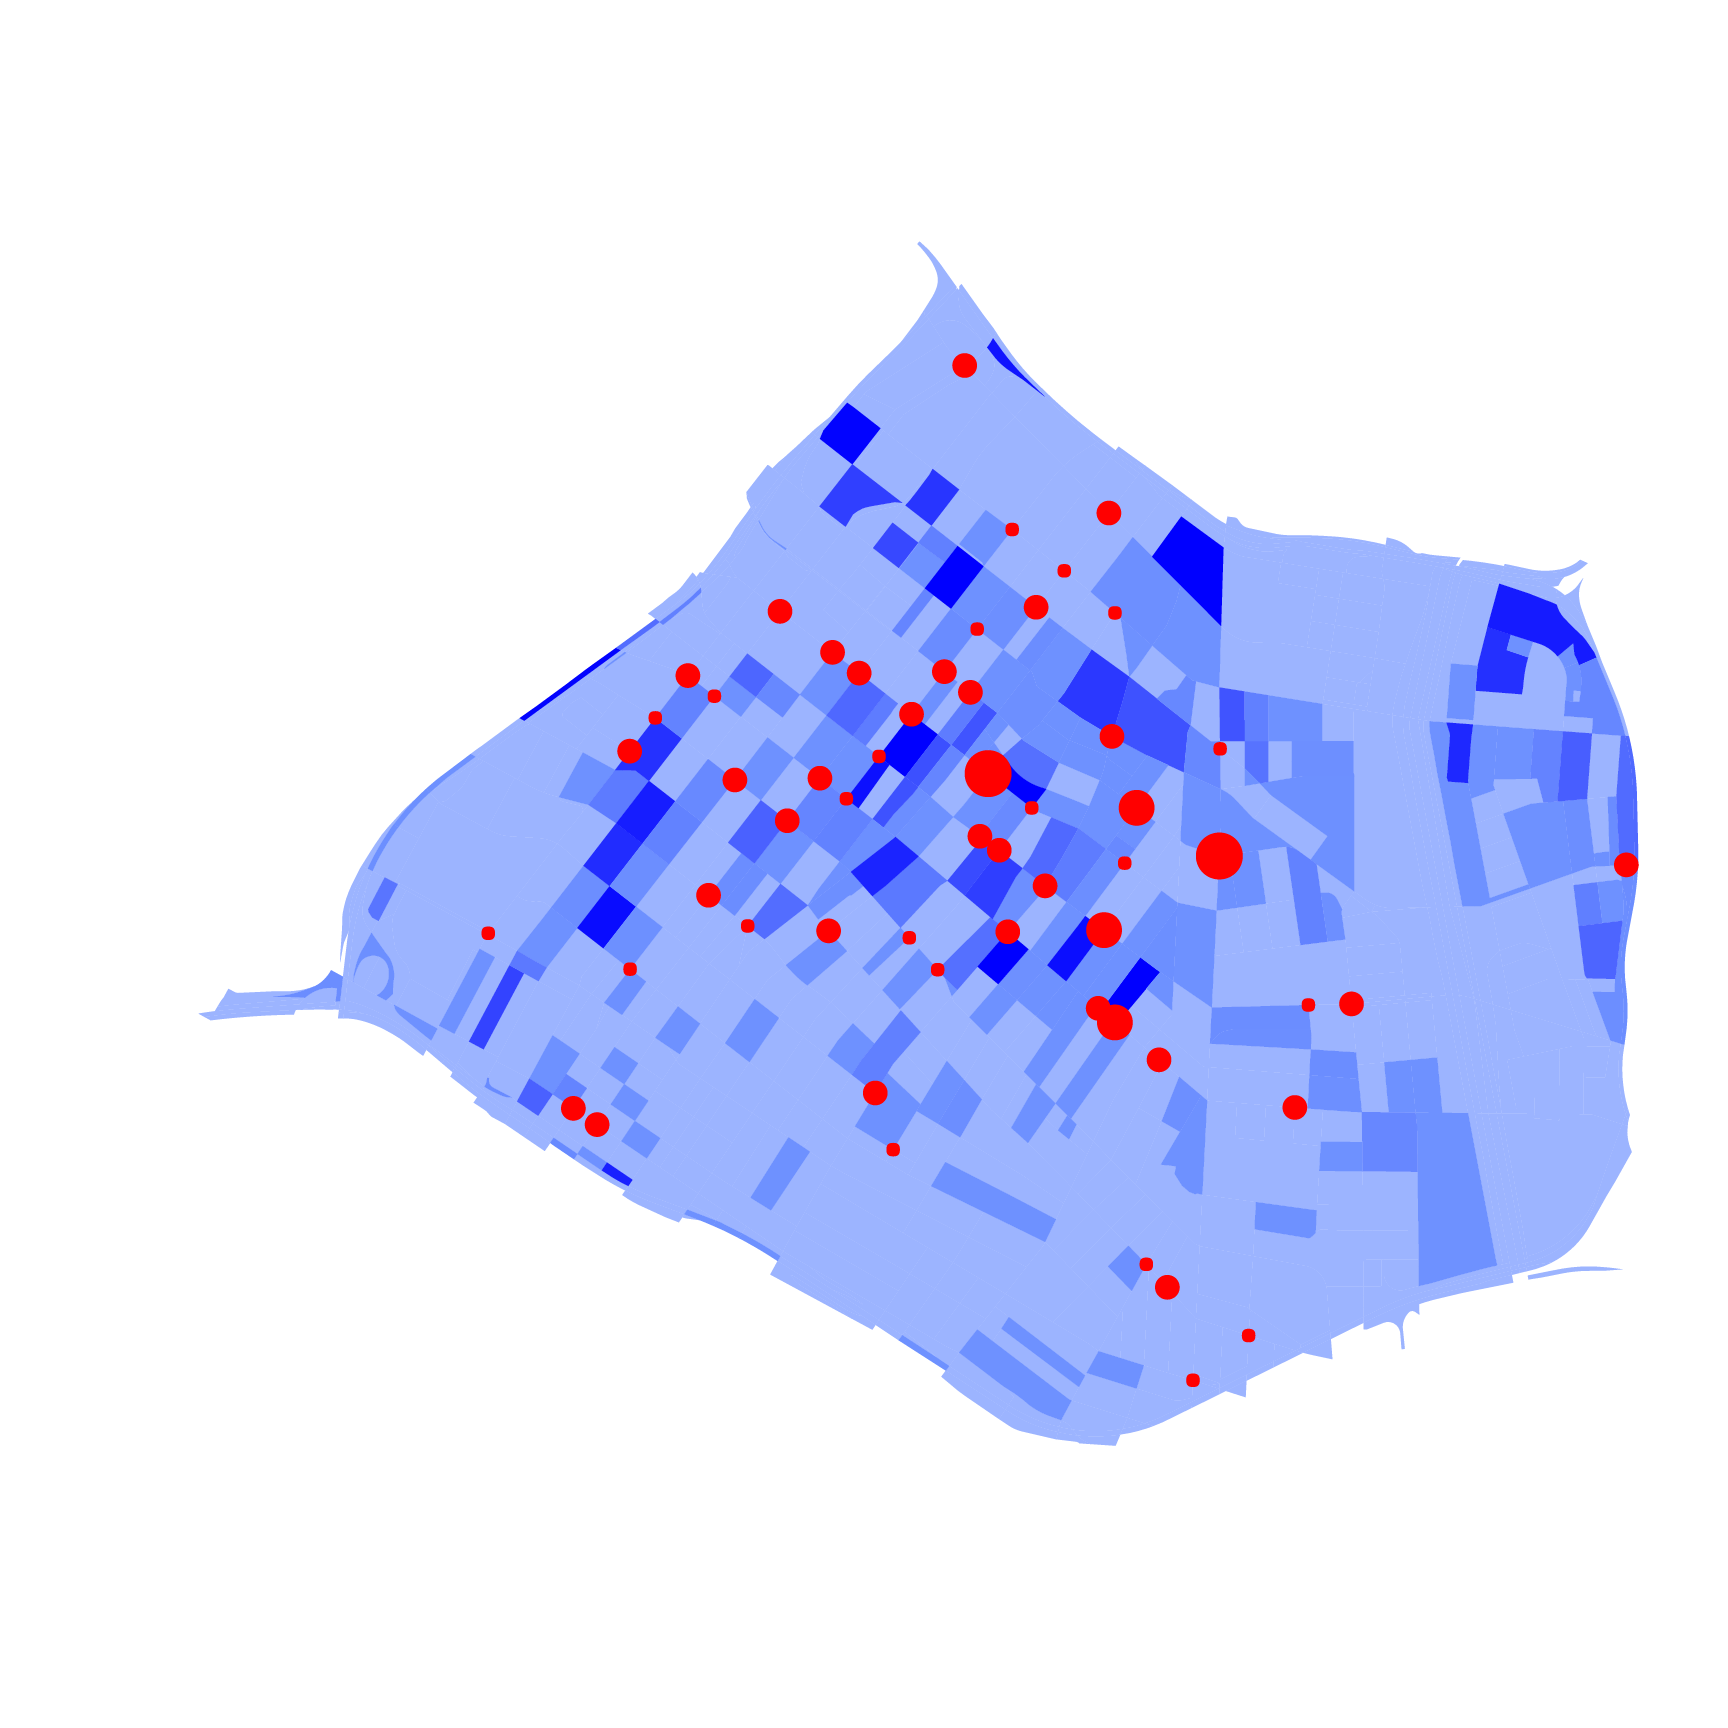 Population density and KSIs per intersection.